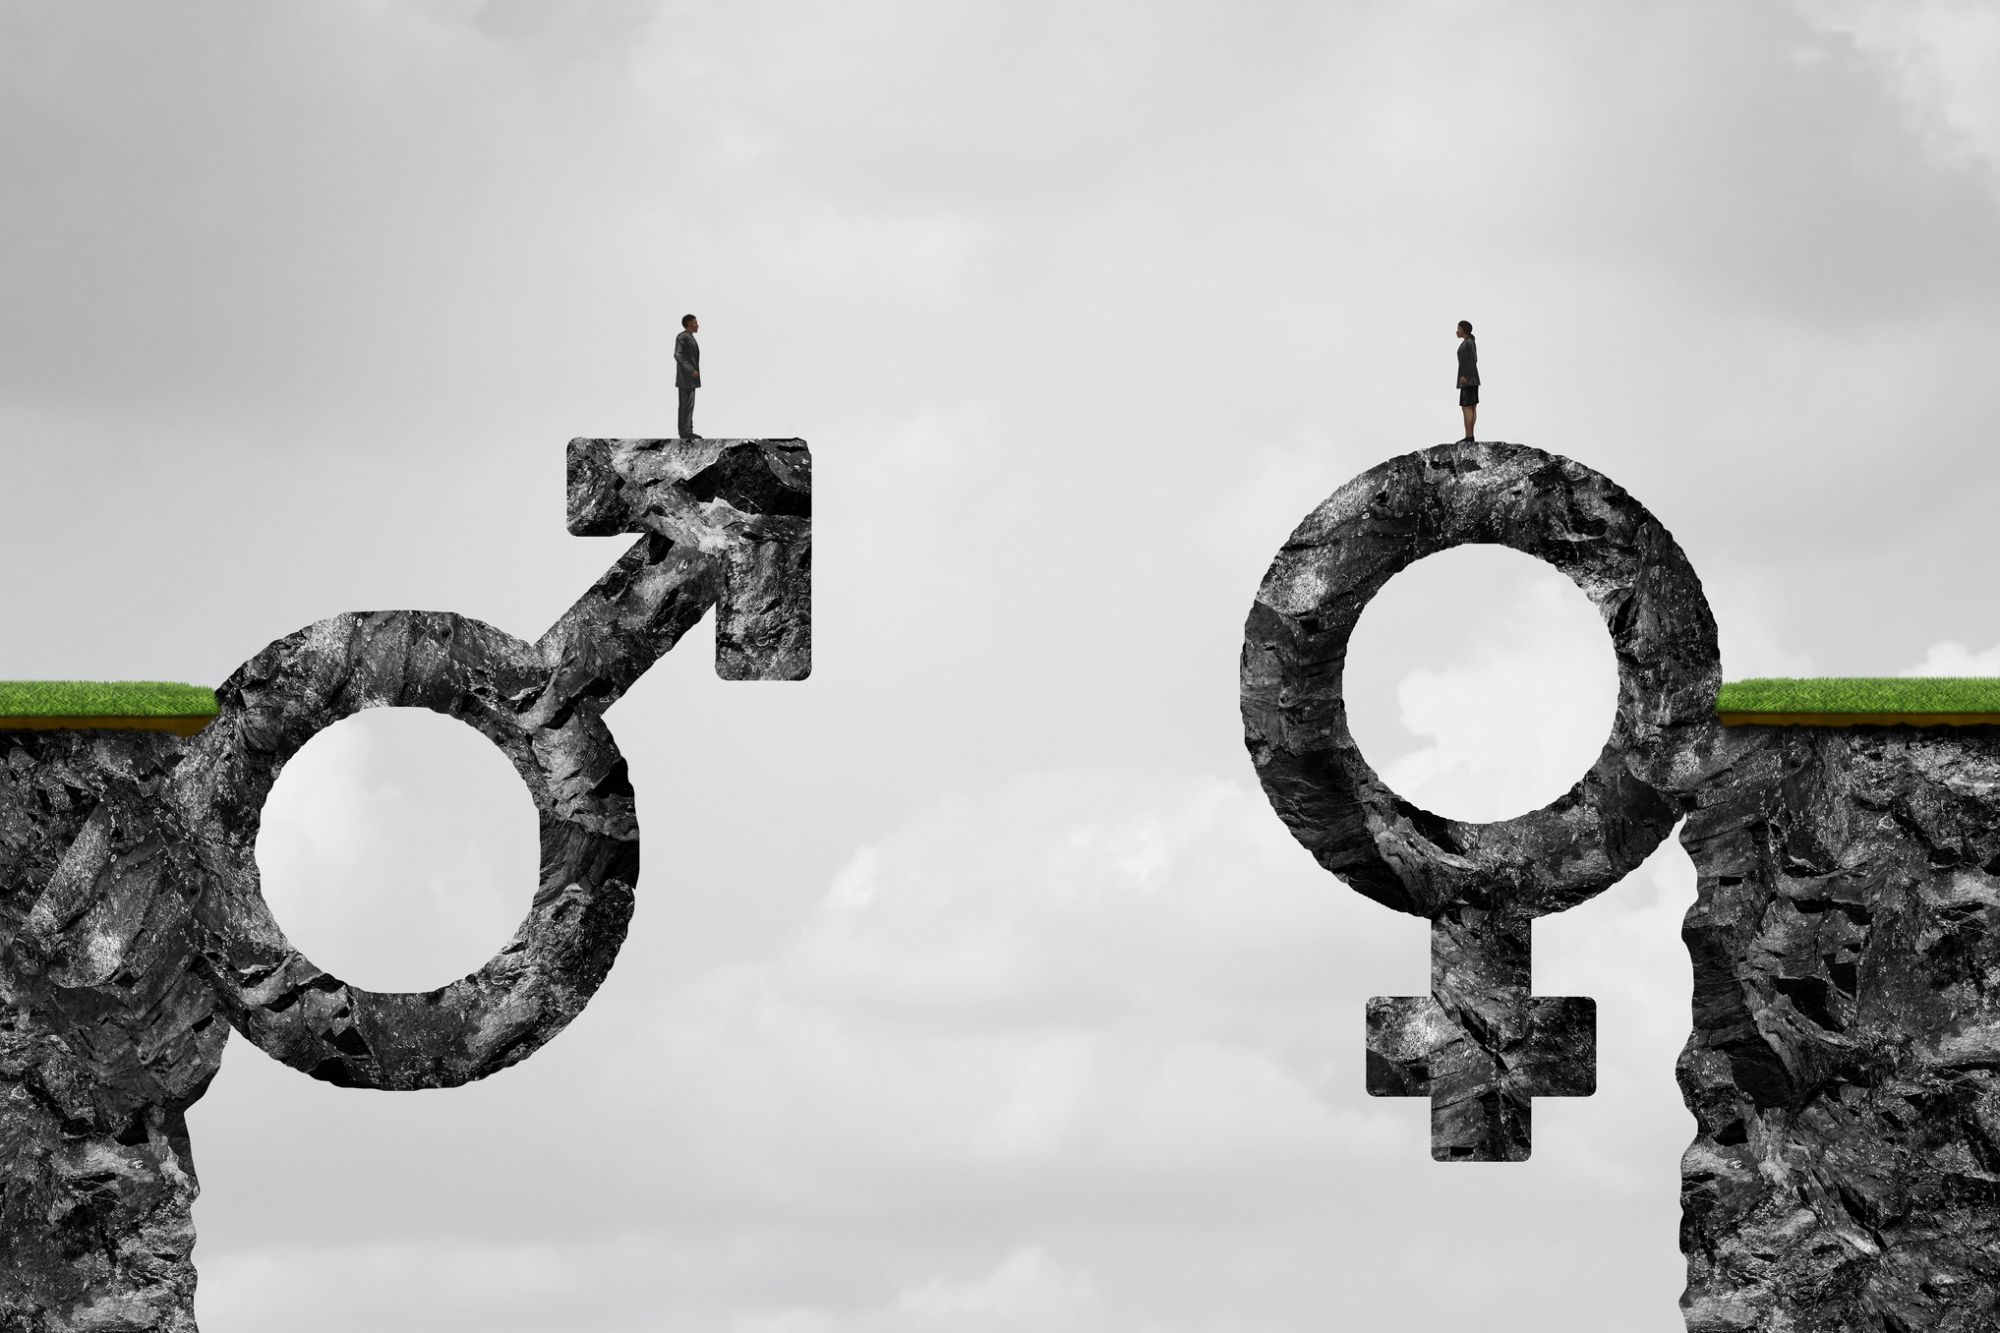 How Women Can Finally Bridge the Gender Gap in the C-Suite